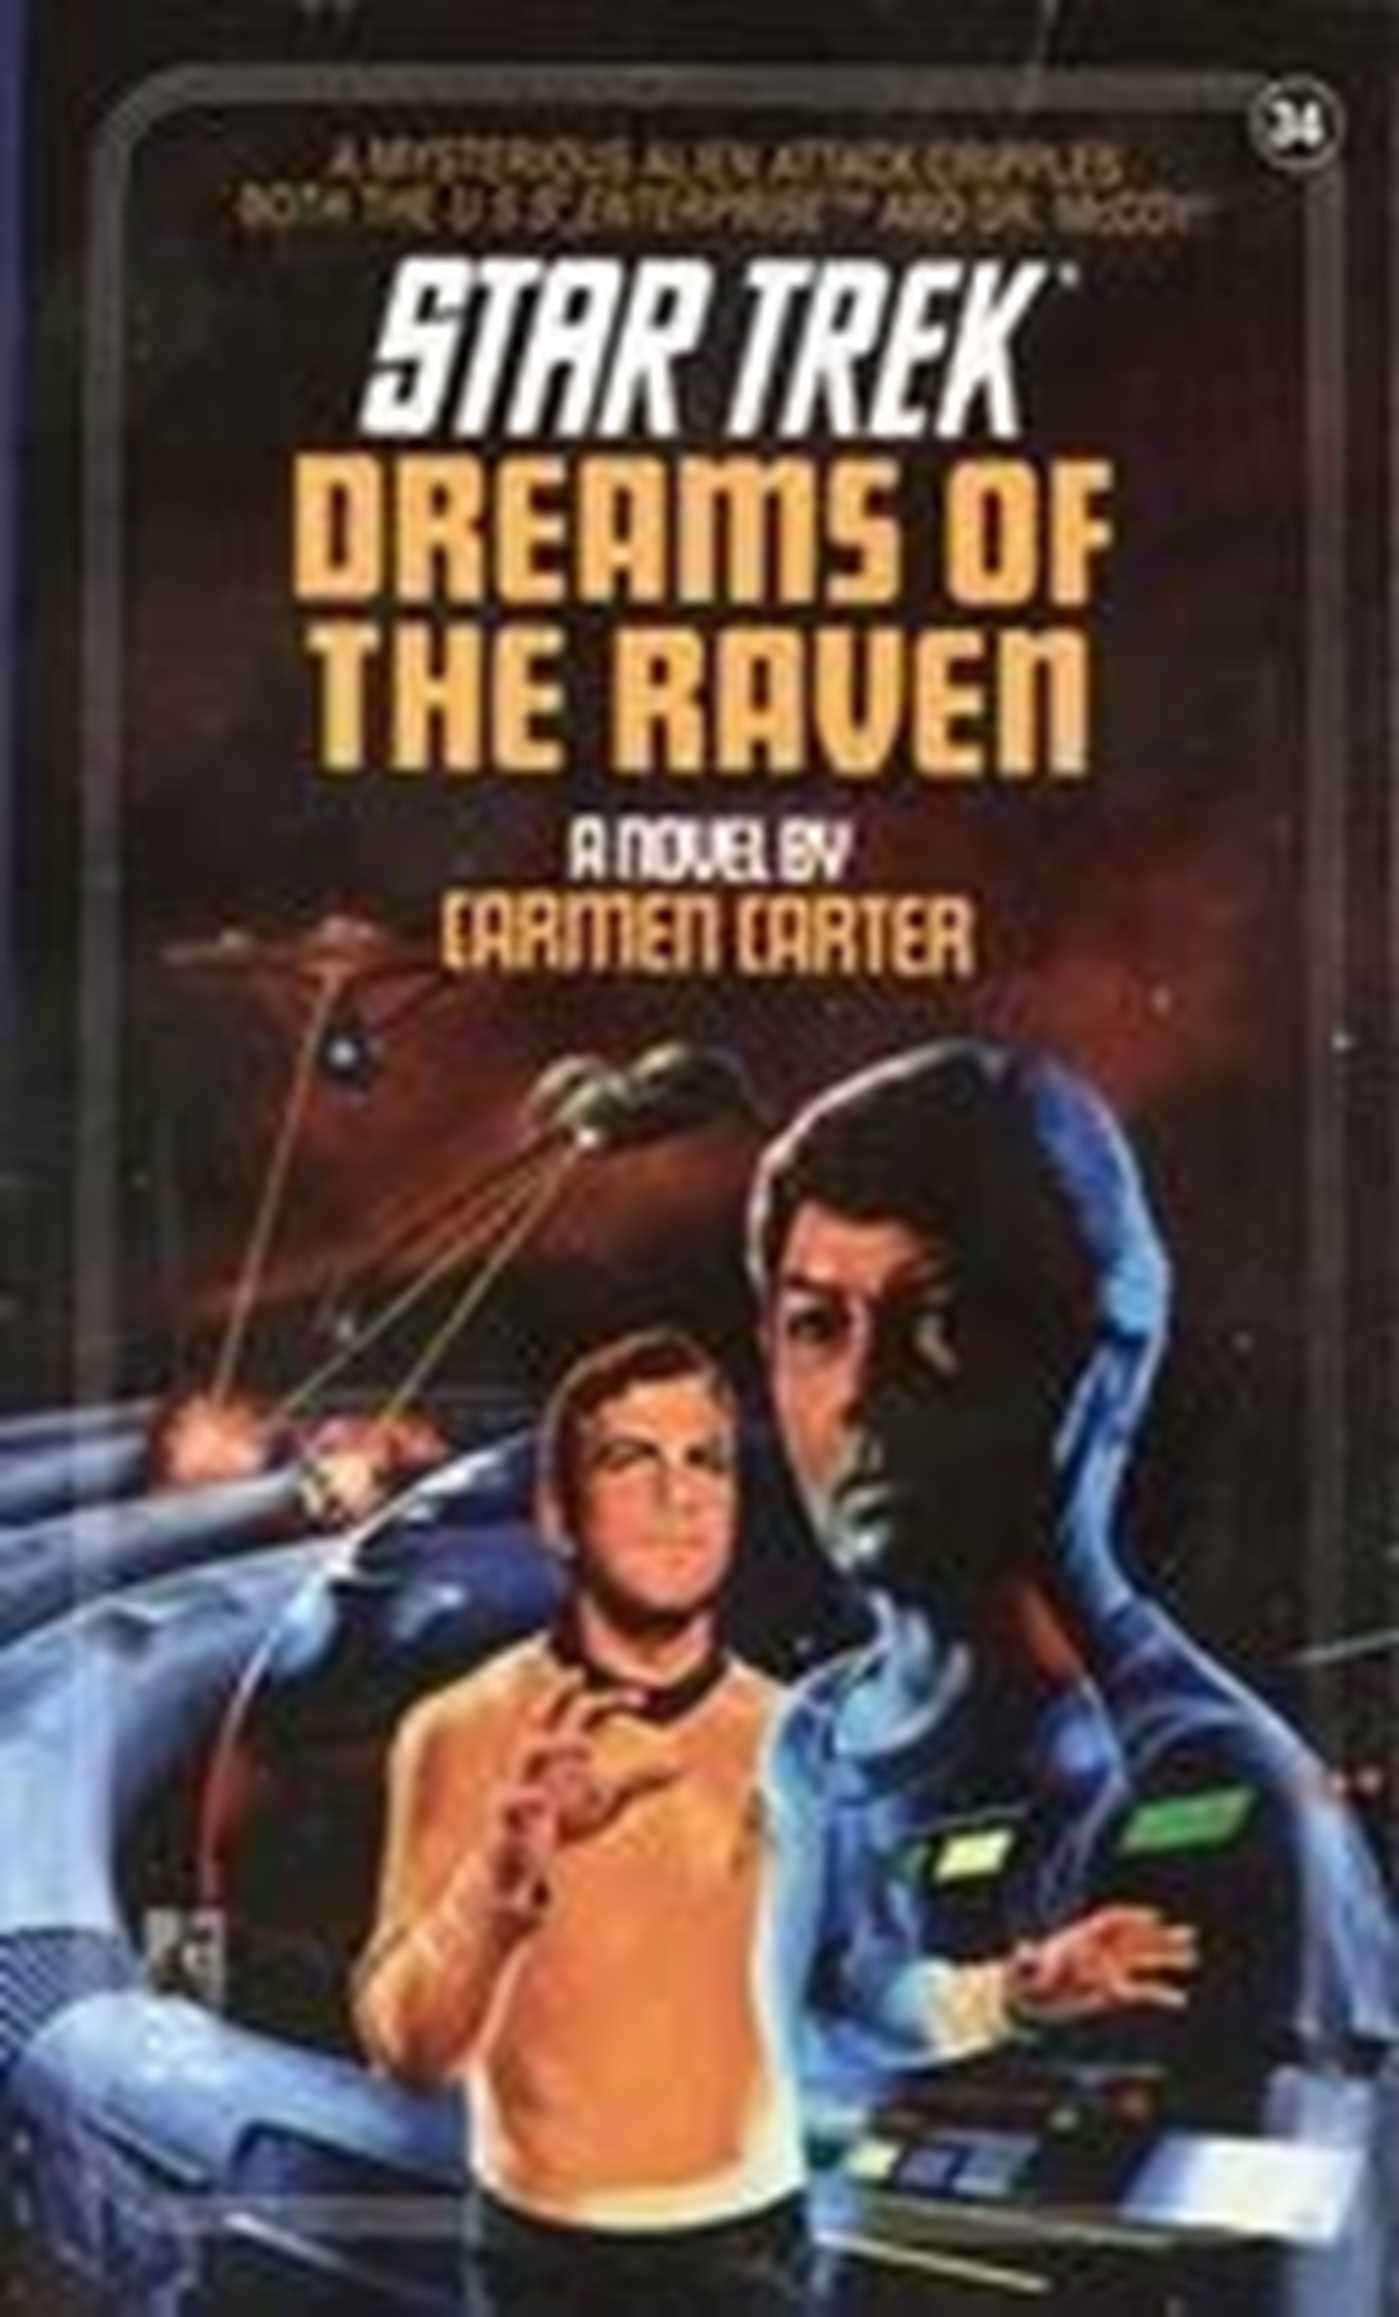 Dreams-of-the-raven-9780743419857_hr